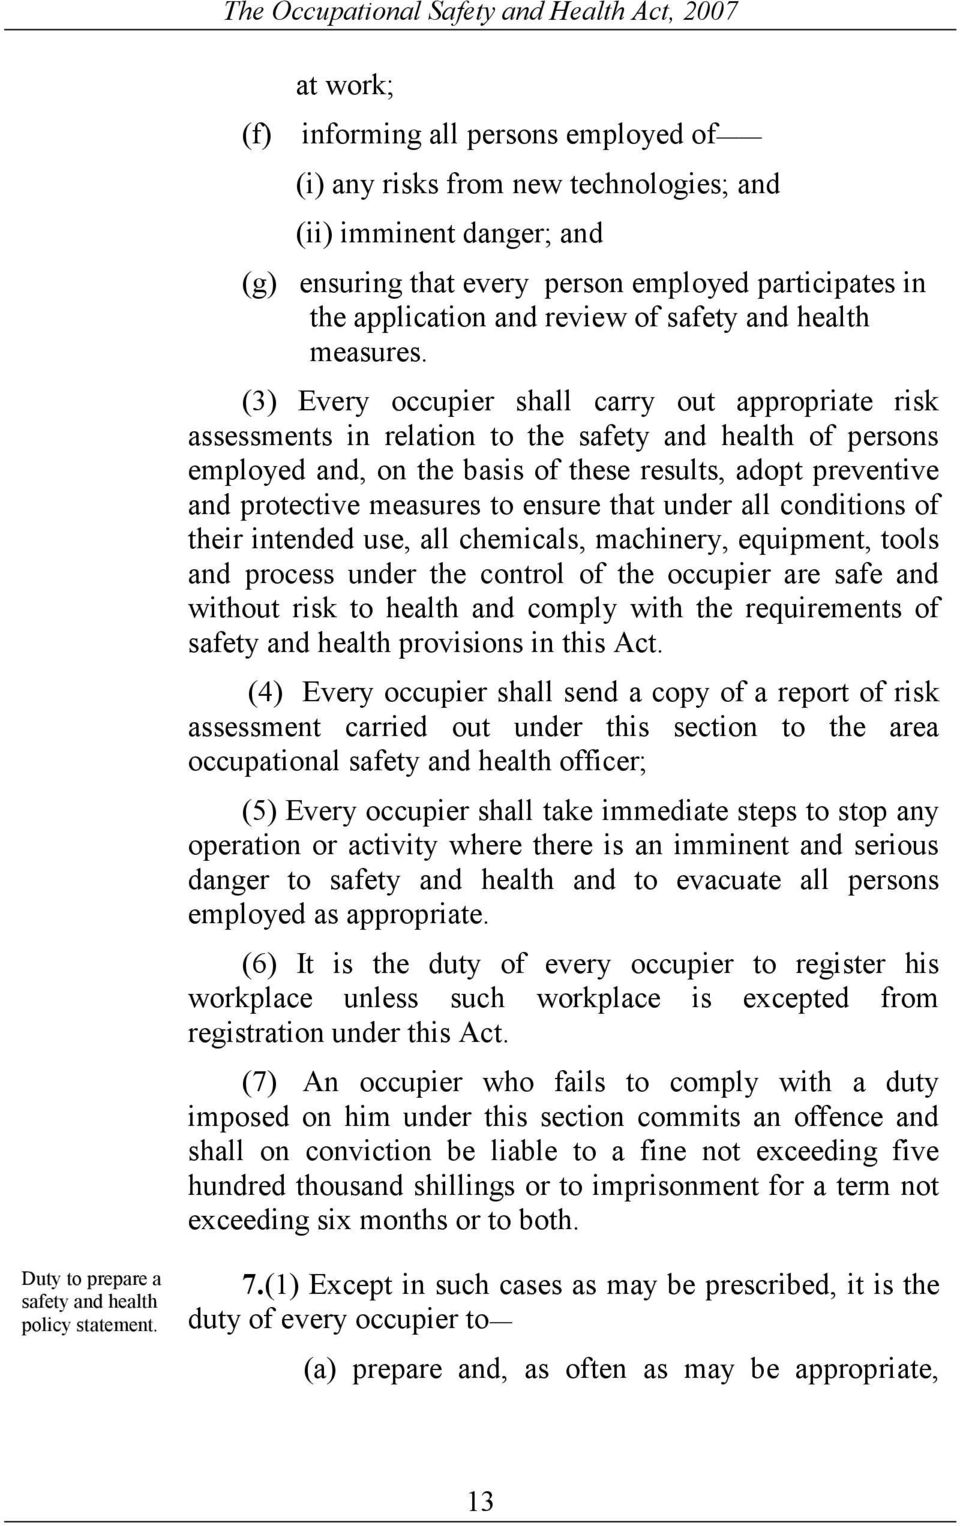 (3) Every occupier shall carry out appropriate risk assessments in relation to the safety and health of persons employed and, on the basis of these results, adopt preventive and protective measures